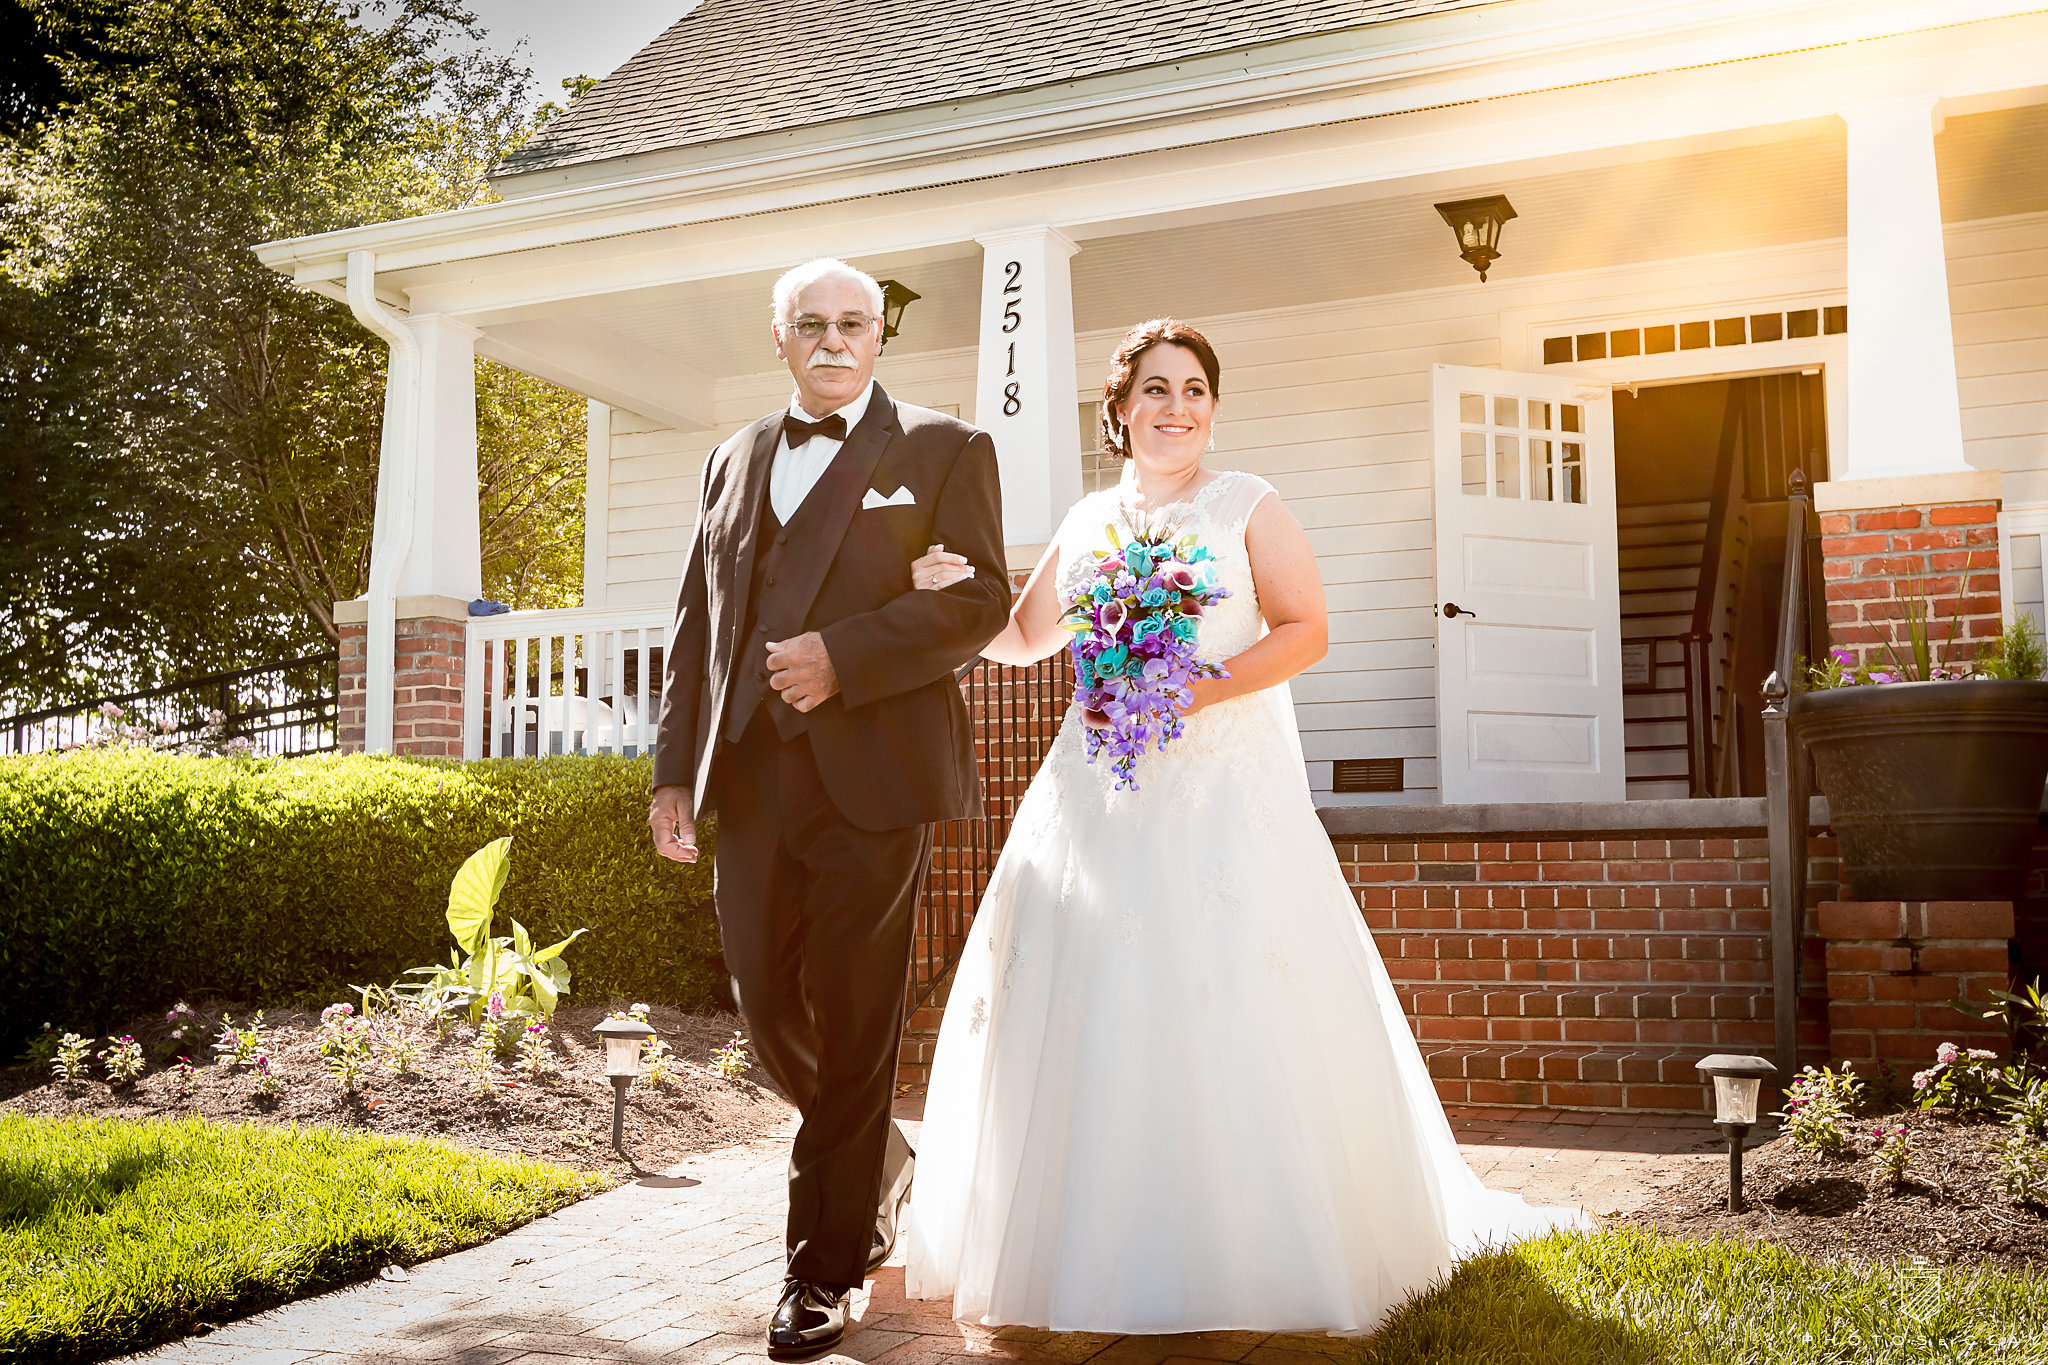 new york bride groom raleigh nc wedding dress